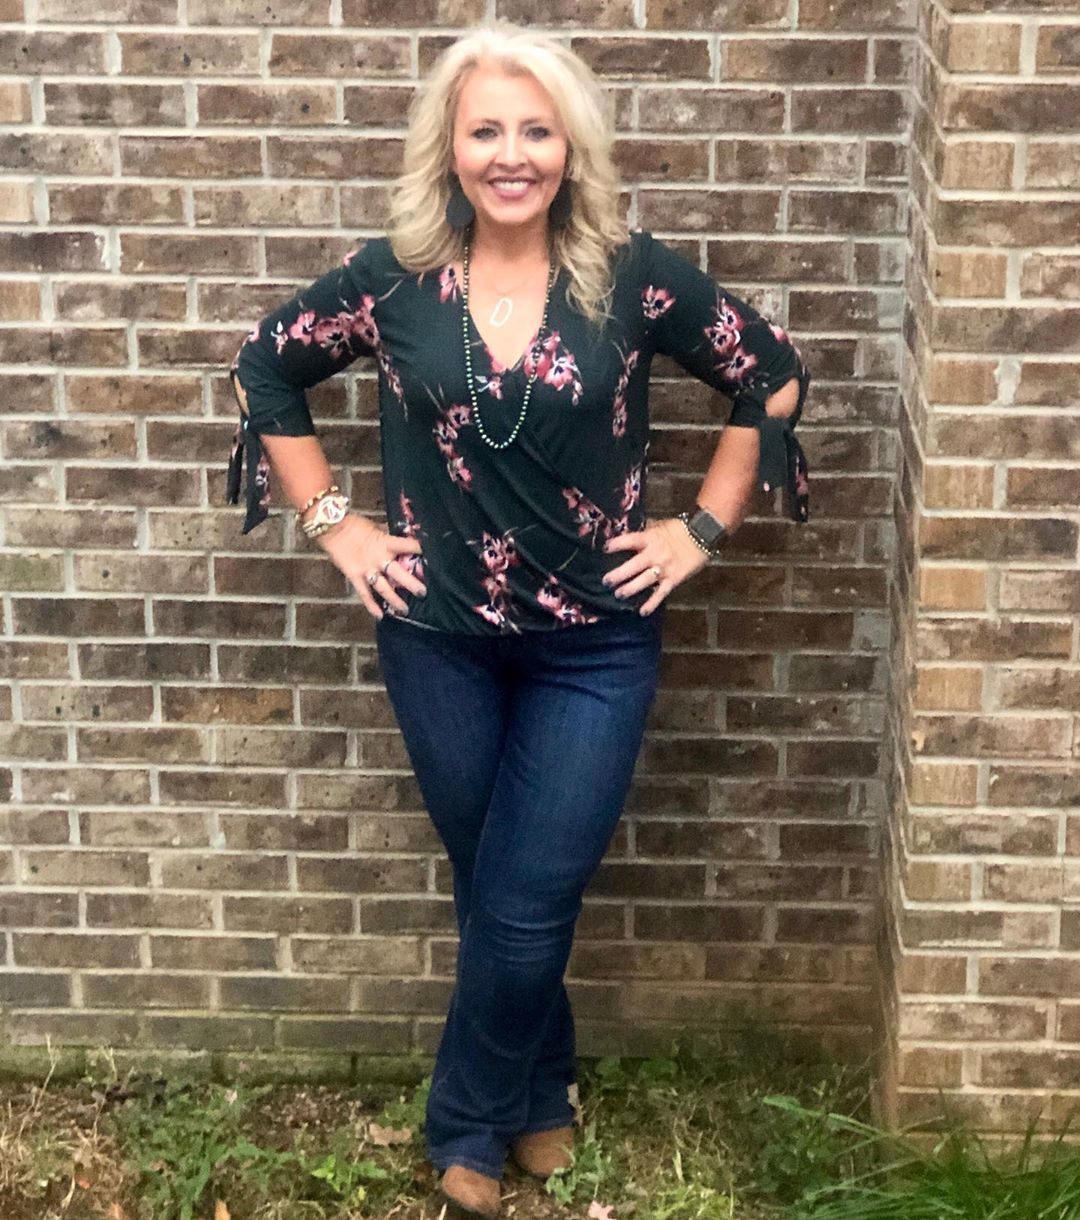 "M I S T Y  D O W D Y on Instagram: ""Third day of @stitchfix ! This may be my fave item! I love the style and the comfort of this shirt! I received so many compliments today…"" #wfaves"